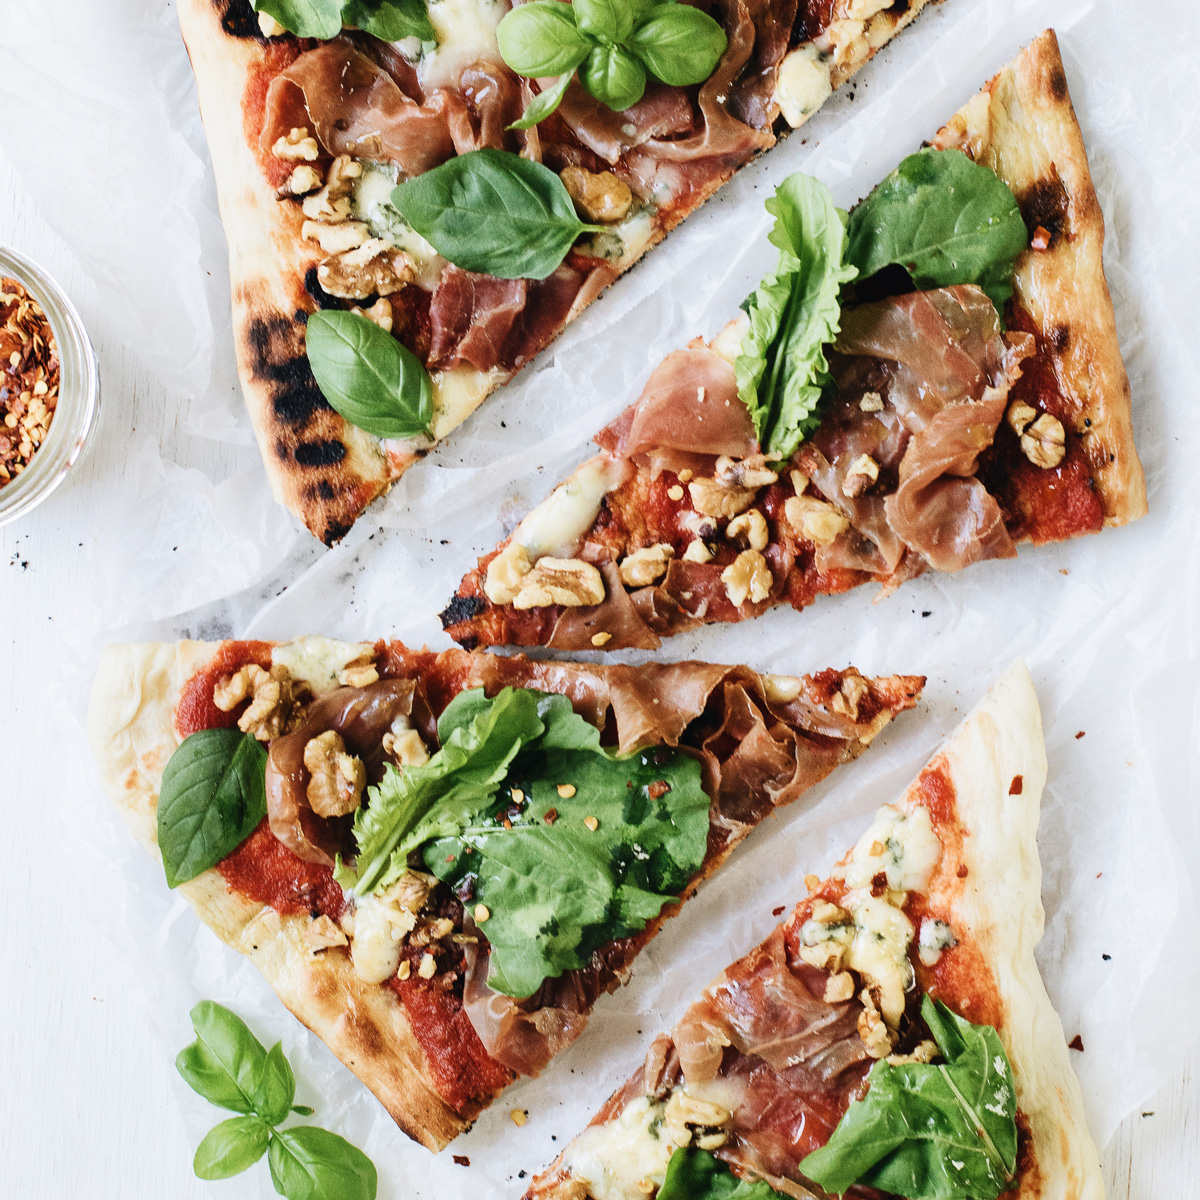 Grilled Pizza with Prosciutto, Blue Cheese, Walnuts, and Arugula